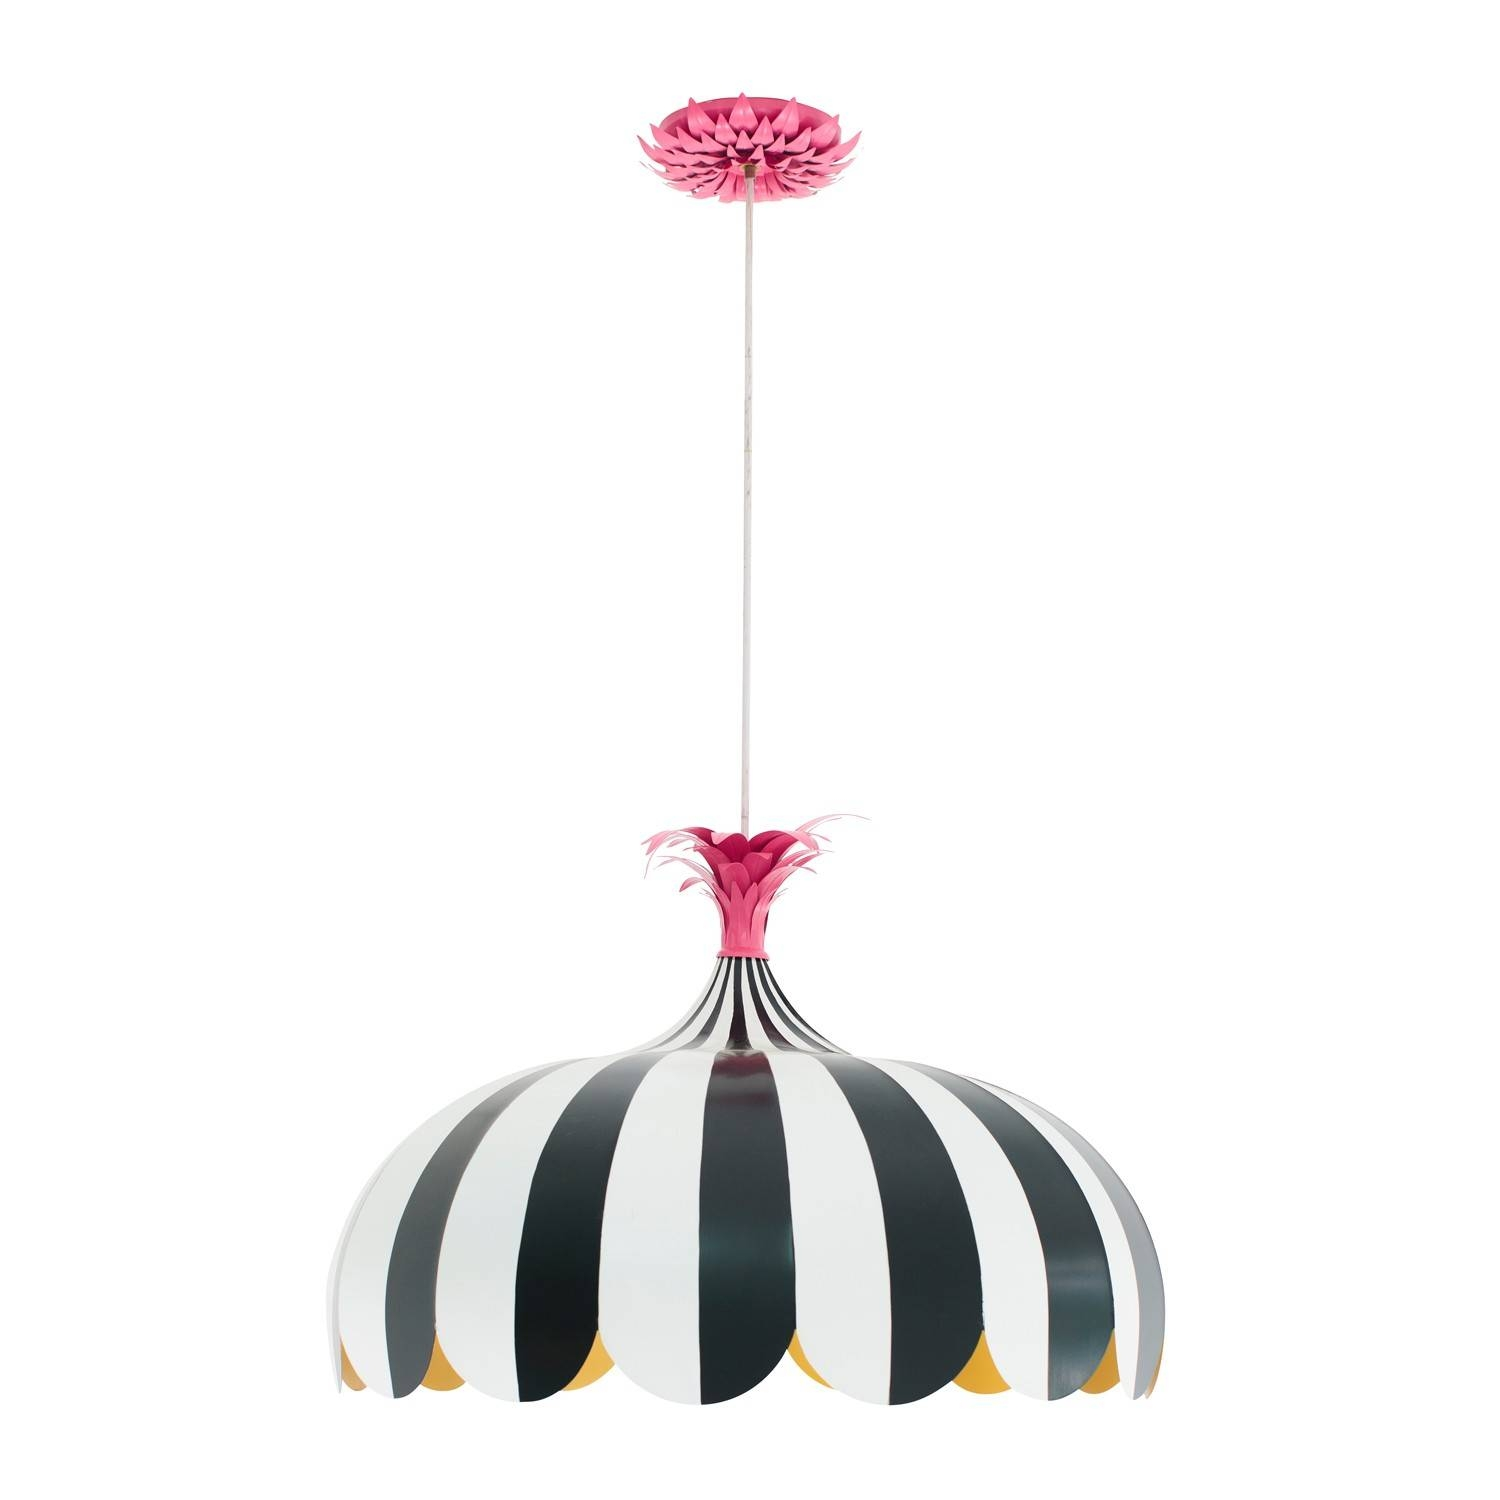 Lala Pendant - Stray Dog Designs with regard to Scalloped Pendant Lights (Image 8 of 15)